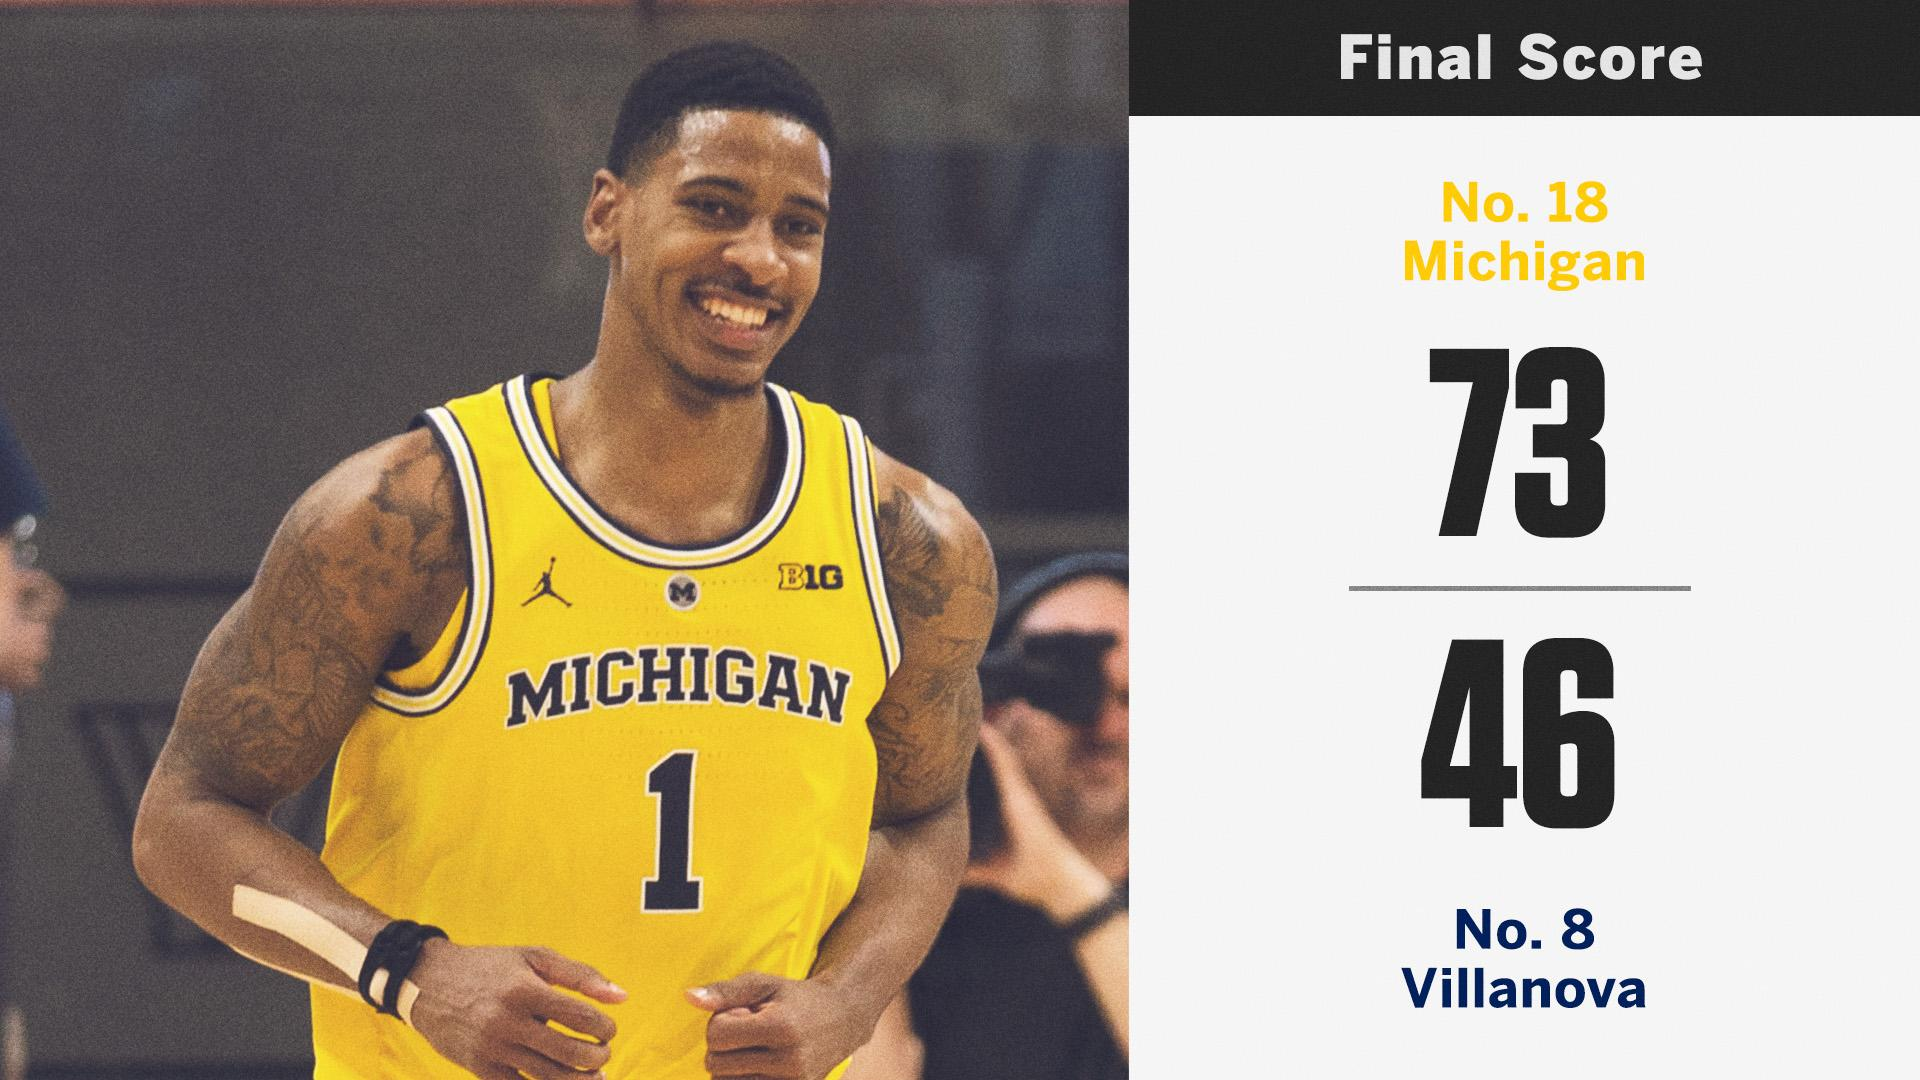 After losing to Villanova in the National Championship game, Michigan gets their revenge in a big way. https://t.co/mMmPNfTizL